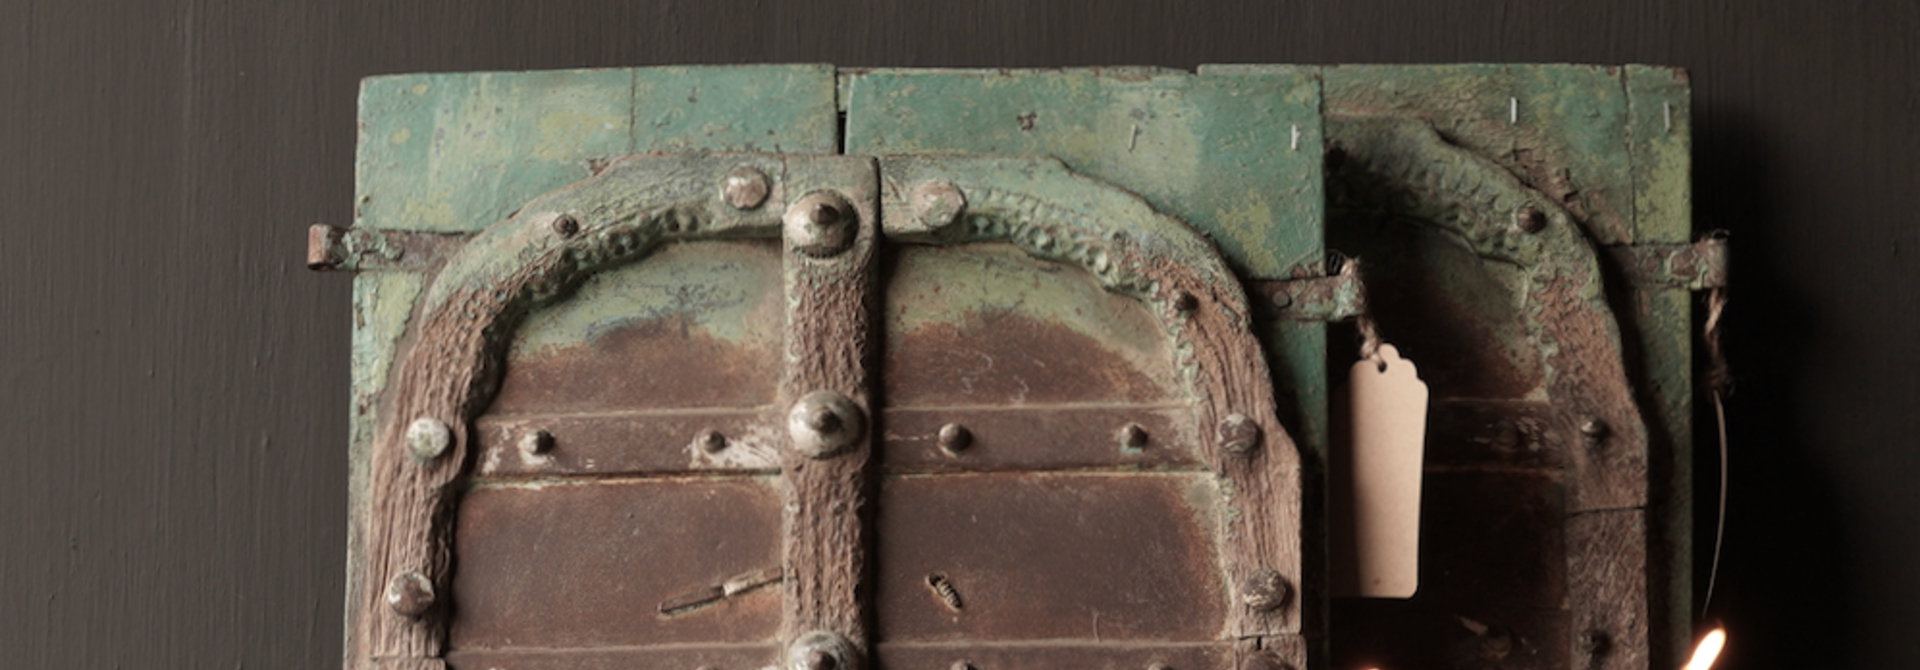 Beautiful Old Indian wooden hatch